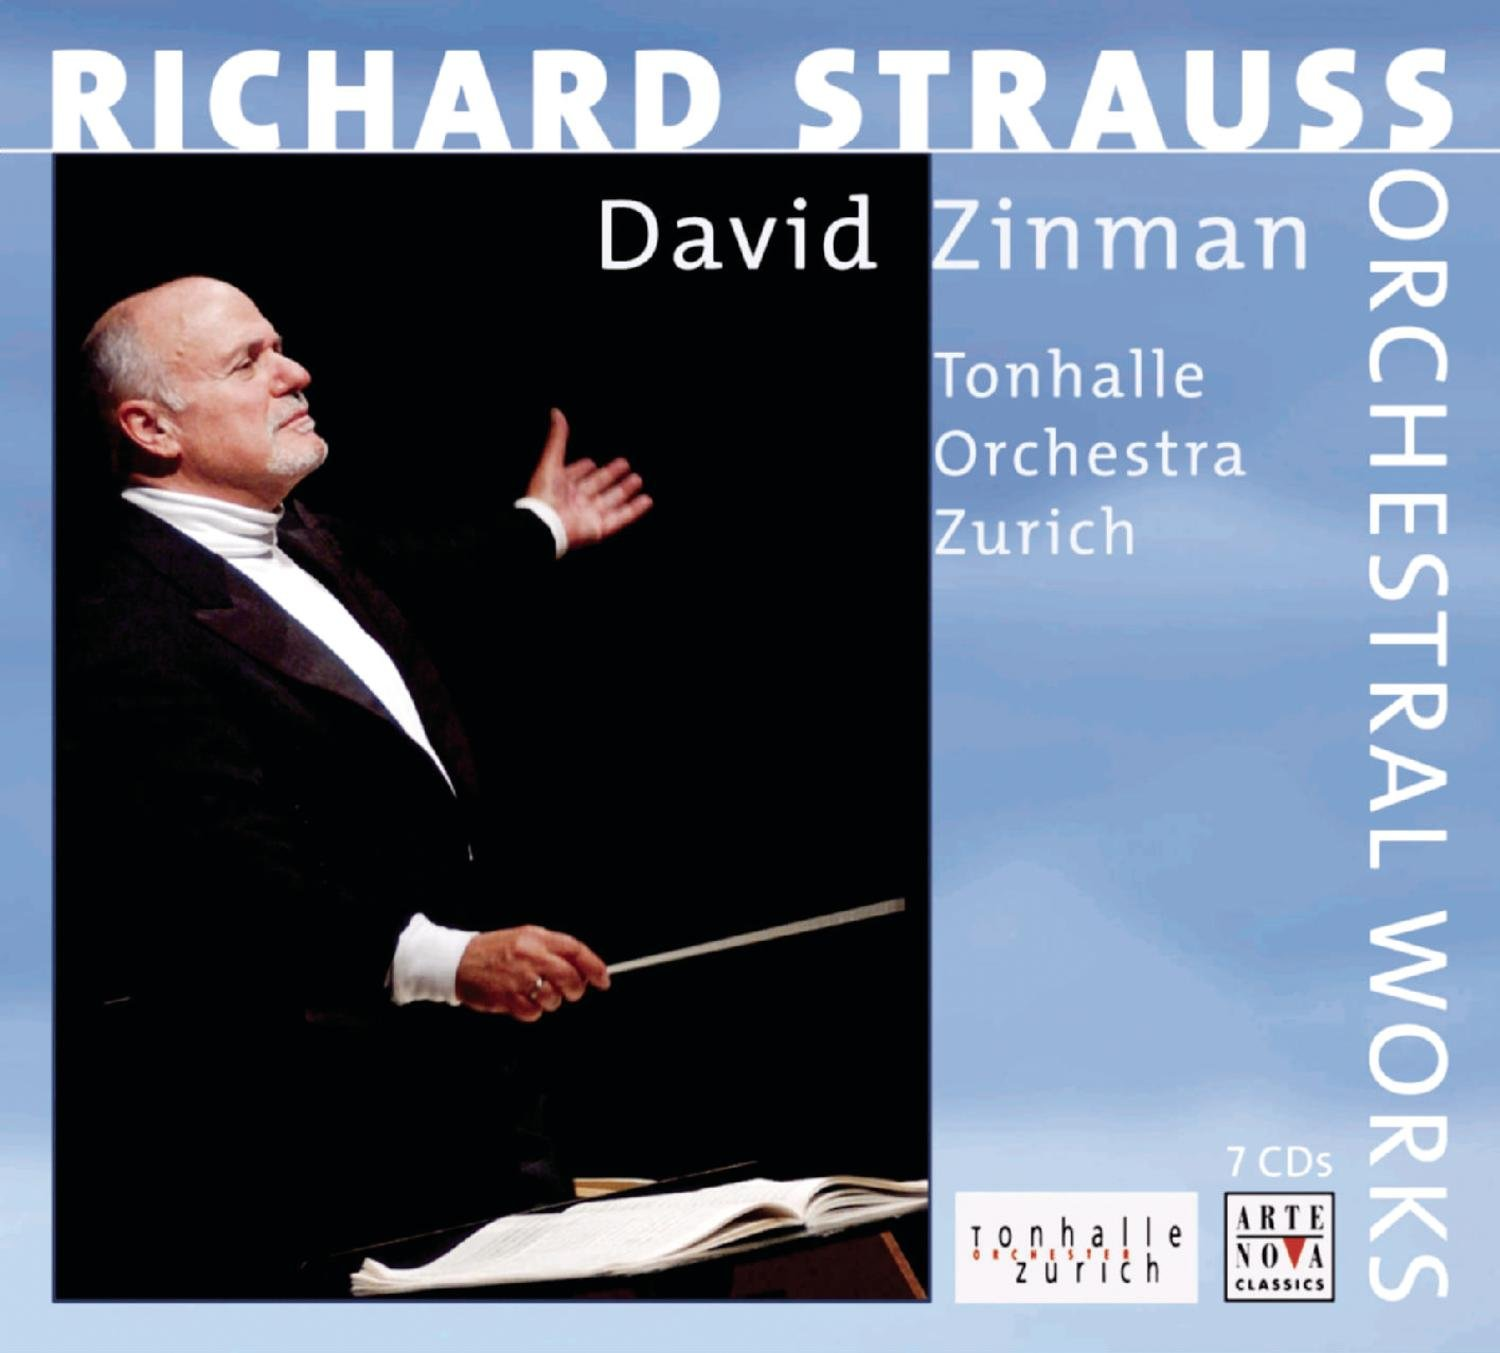 Richard Strauss: Orchestral Works - Complete Edition